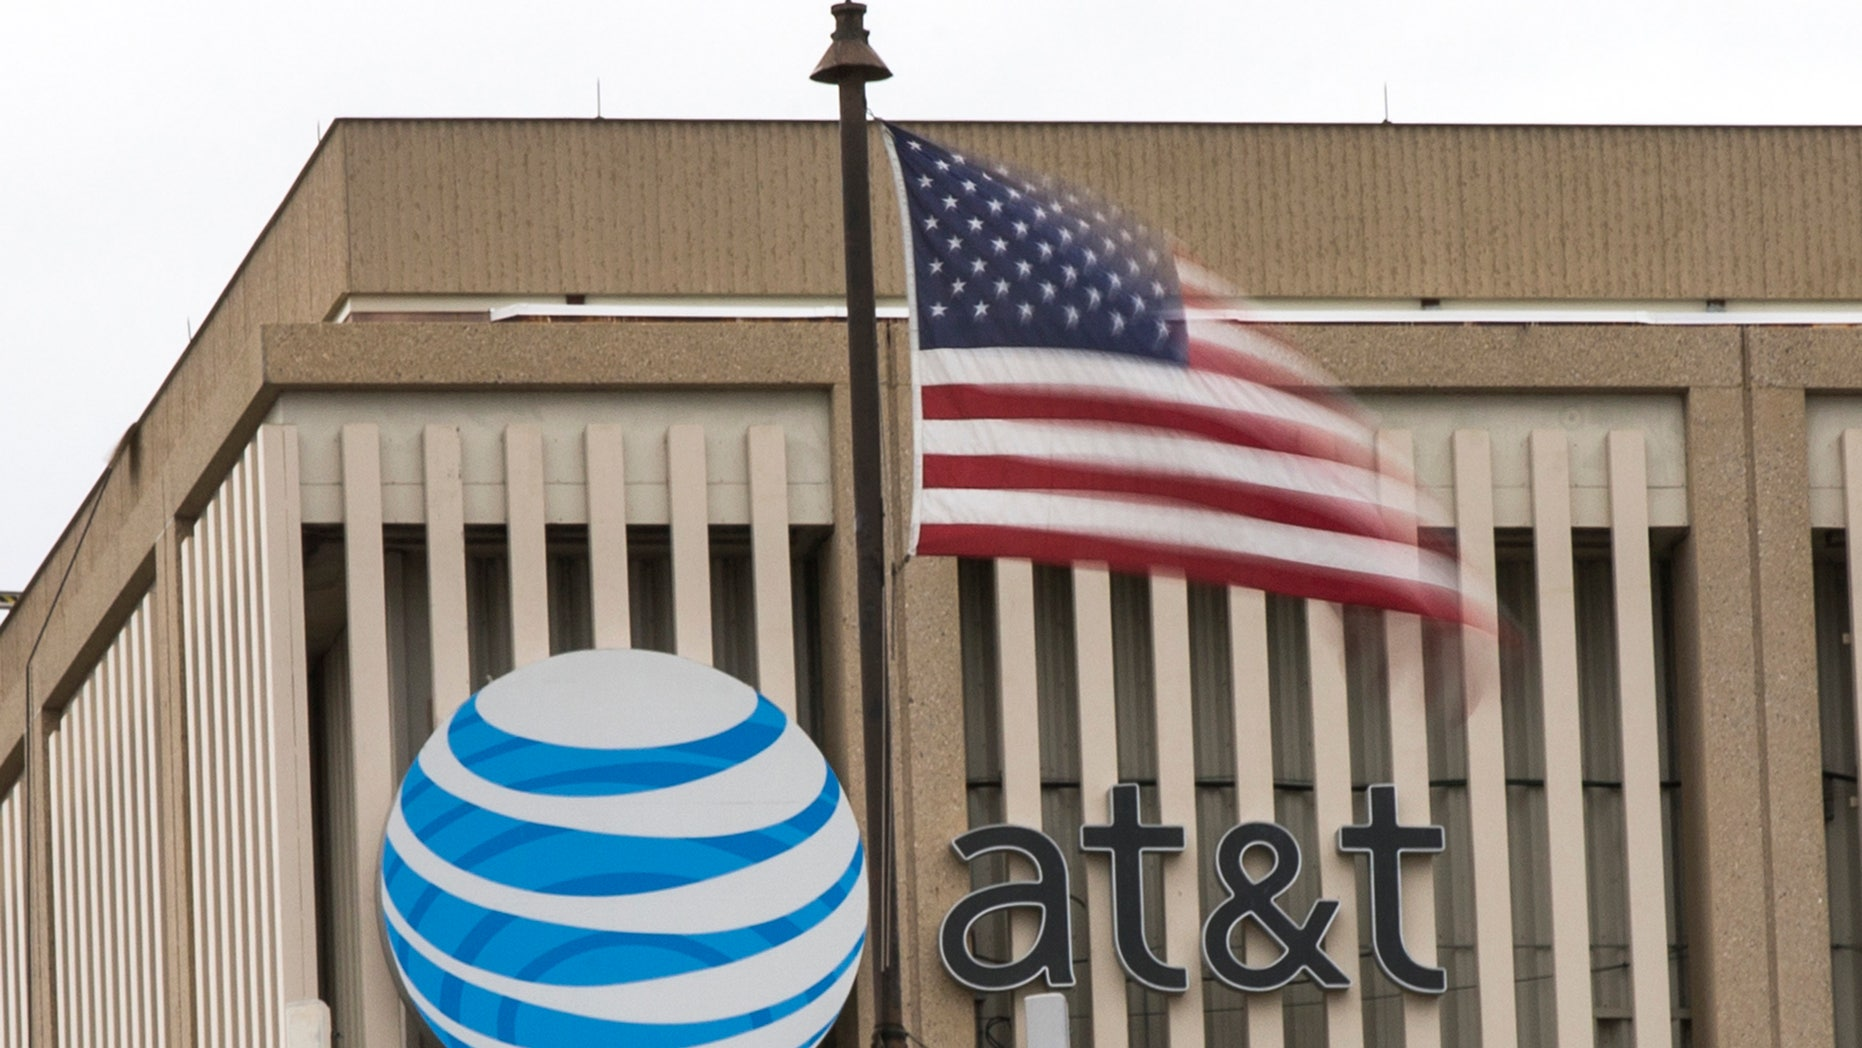 File photo - An AT&T Logo is pictured as a U.S. flag flutters in the foreground in Pasadena, Calif., Jan. 26, 2015.